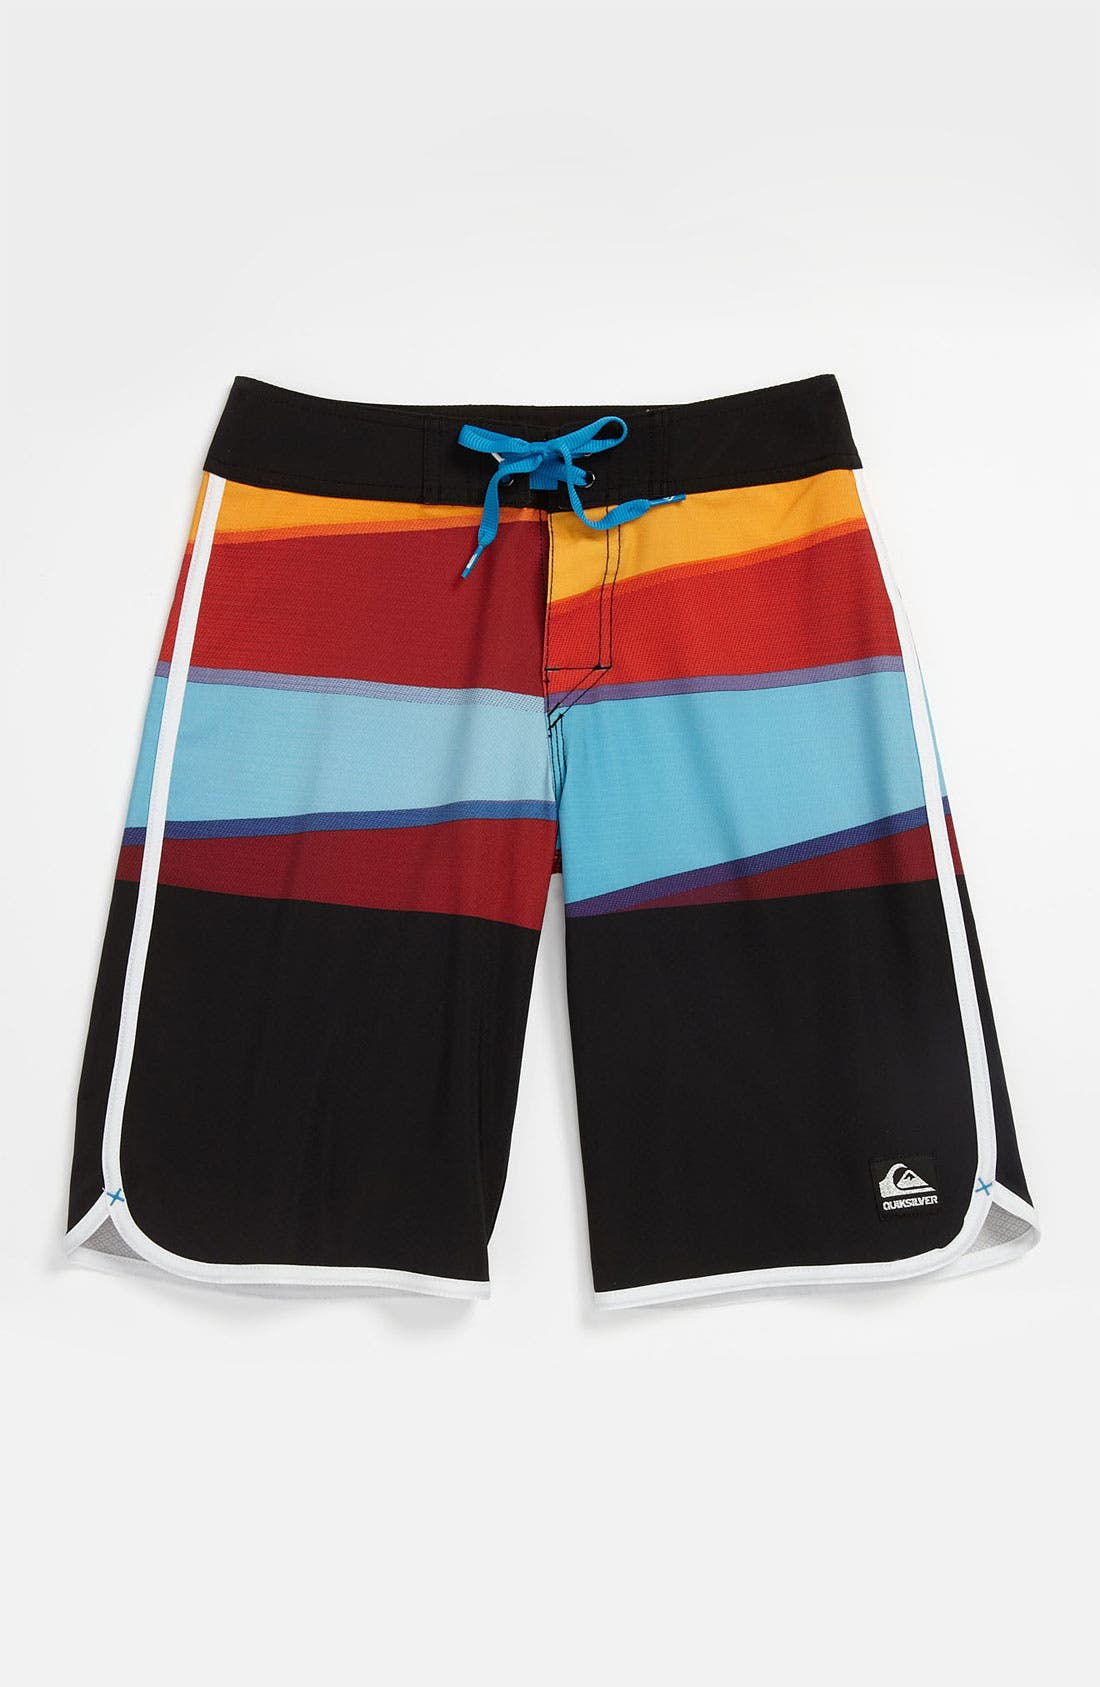 Alternate Image 1 Selected - Quiksilver 'Repel' Board Shorts (Big Boys)